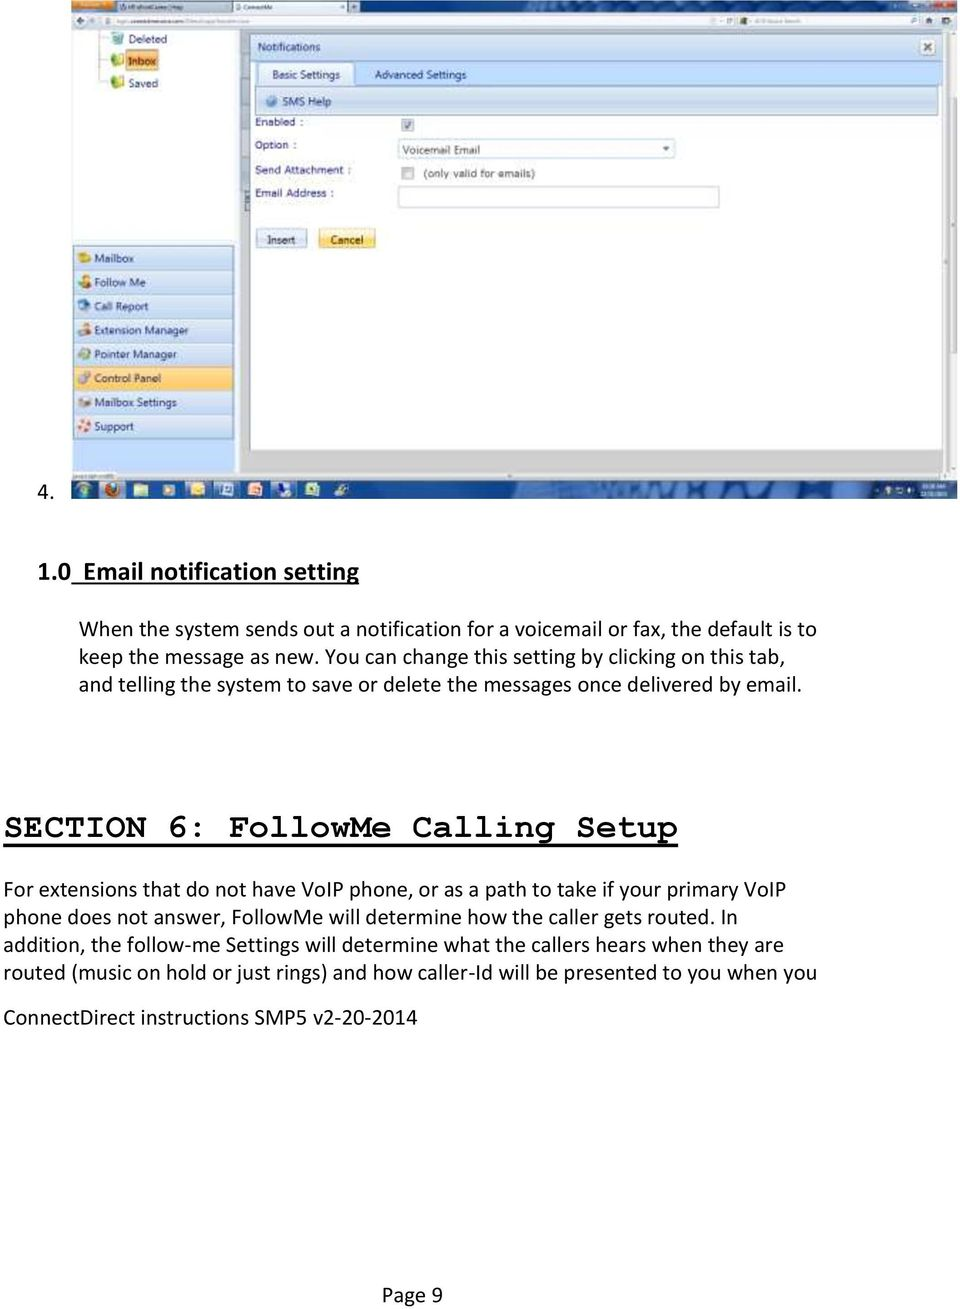 SECTION 6: FollowMe Calling Setup For extensions that do not have VoIP phone, or as a path to take if your primary VoIP phone does not answer, FollowMe will